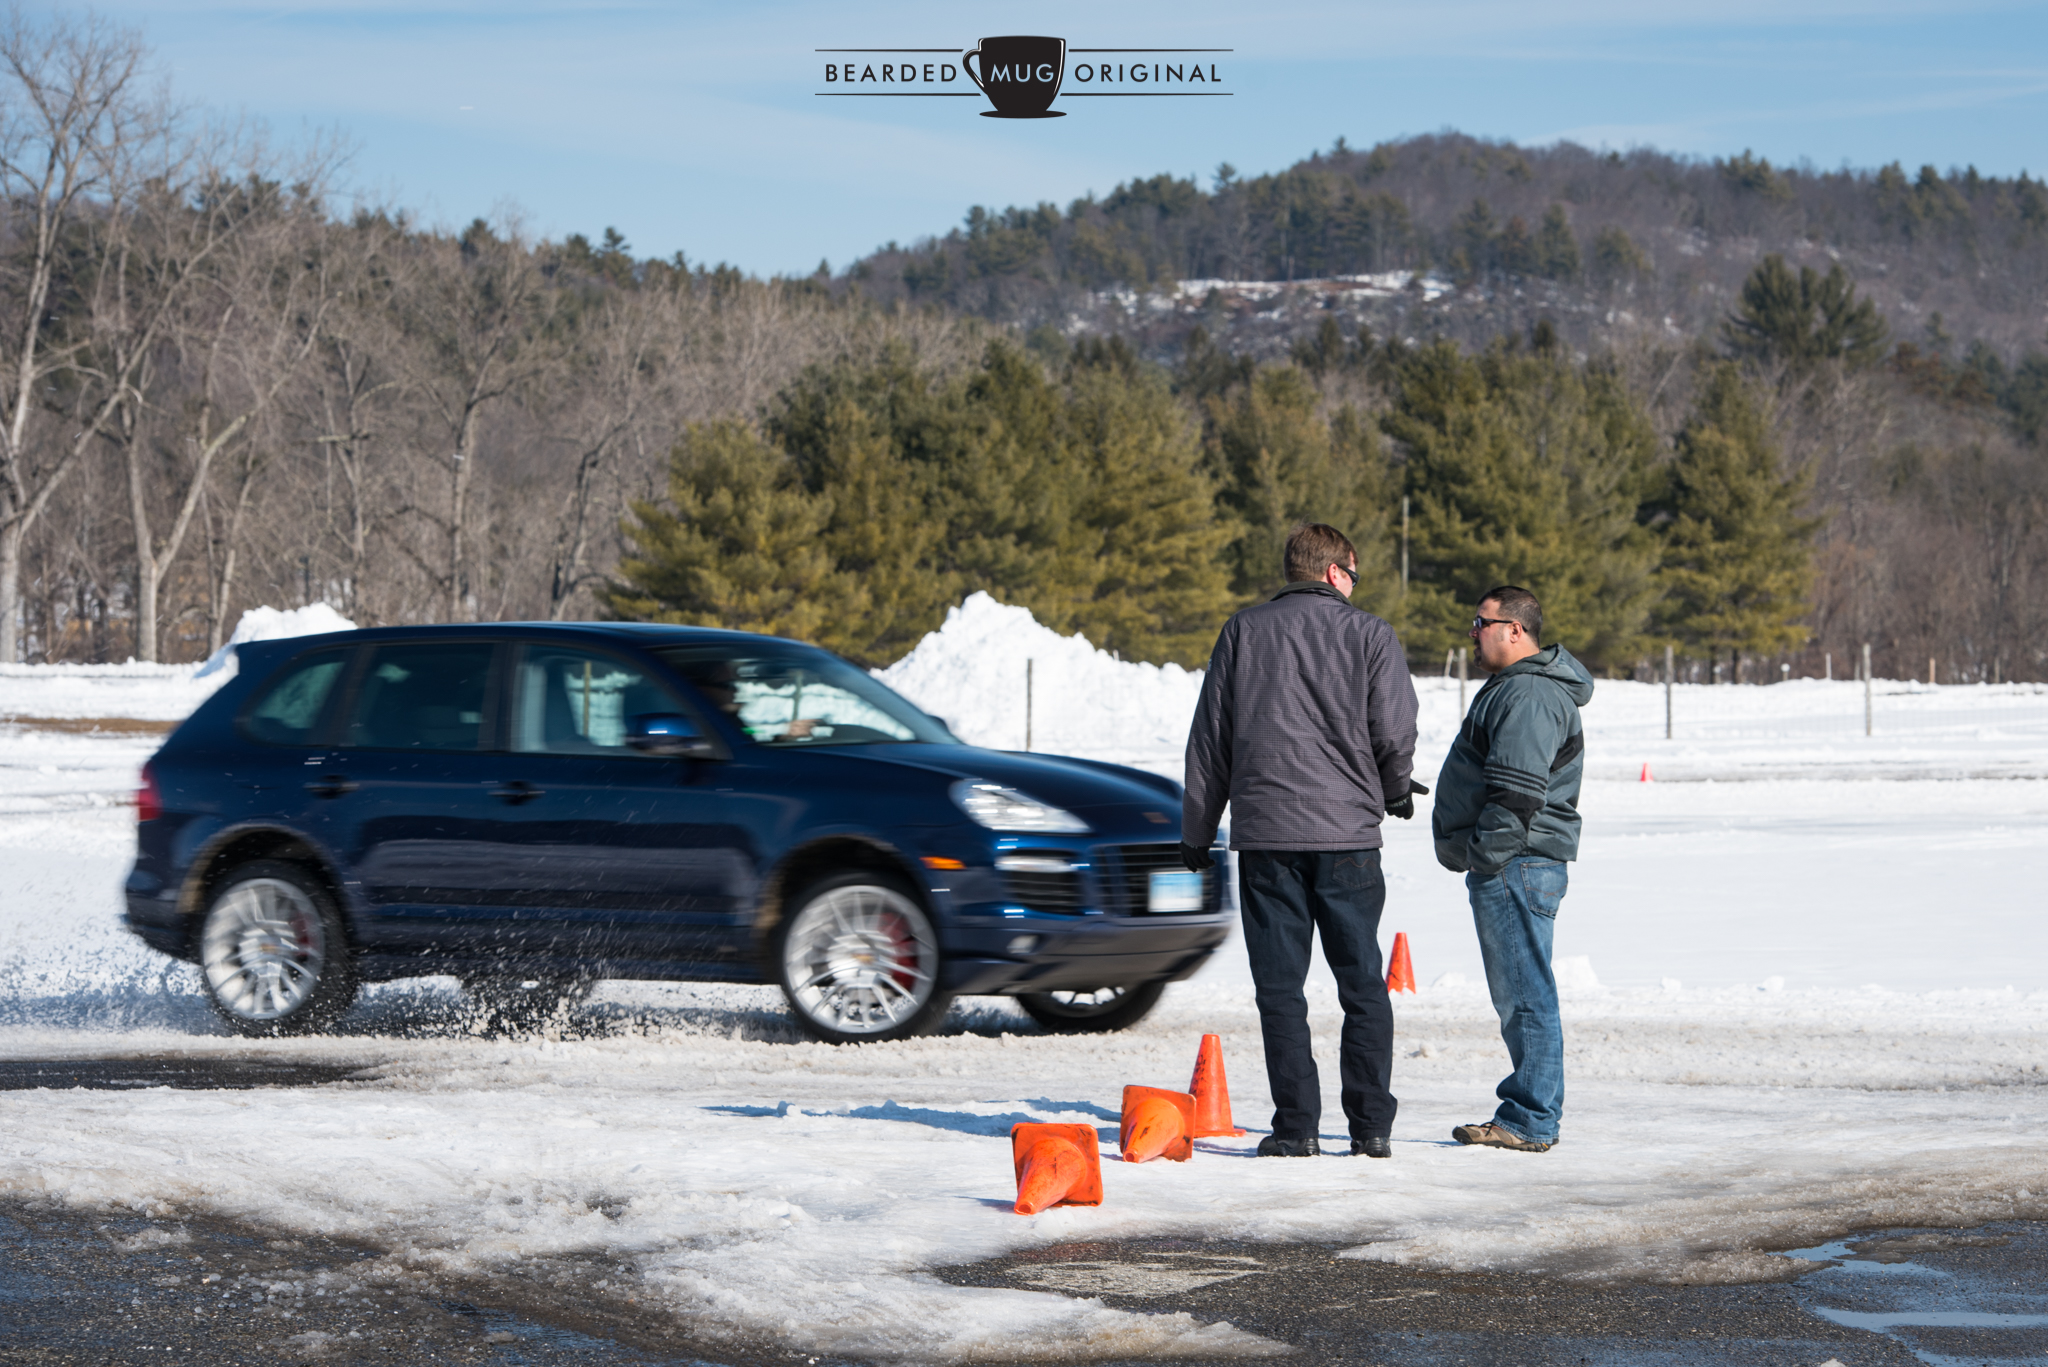 Travis and another gent stand calmly at the track access while a rip-roaring Cayenne slides past.